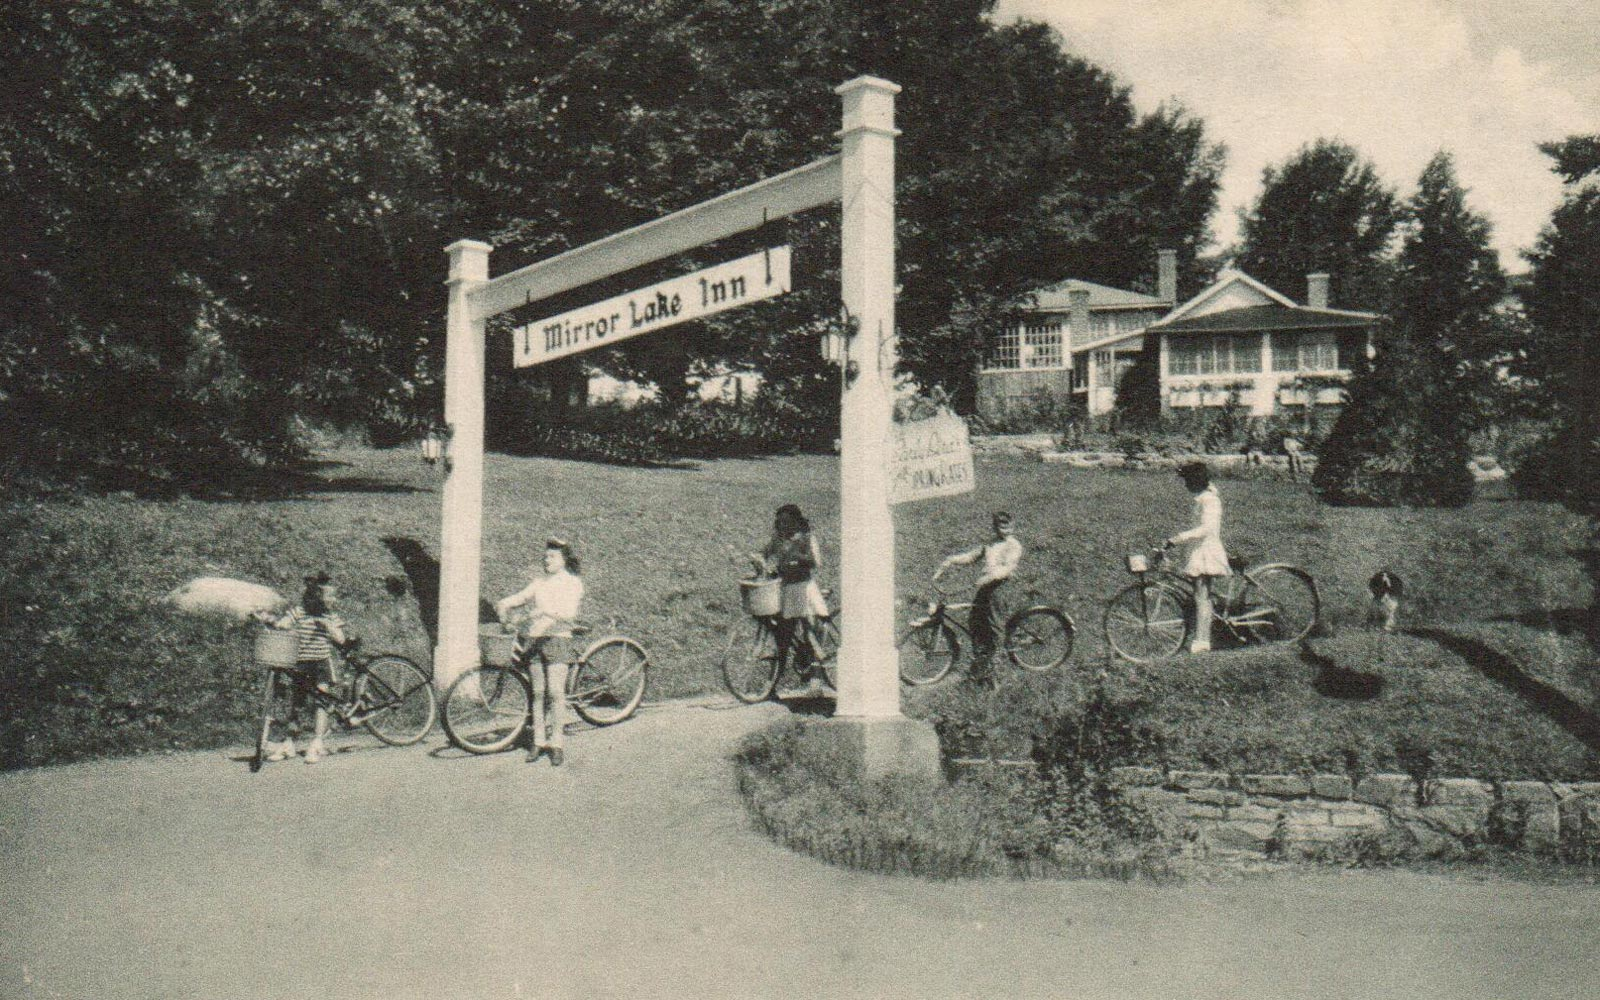 Ladies biking at Mirror Lake Inn